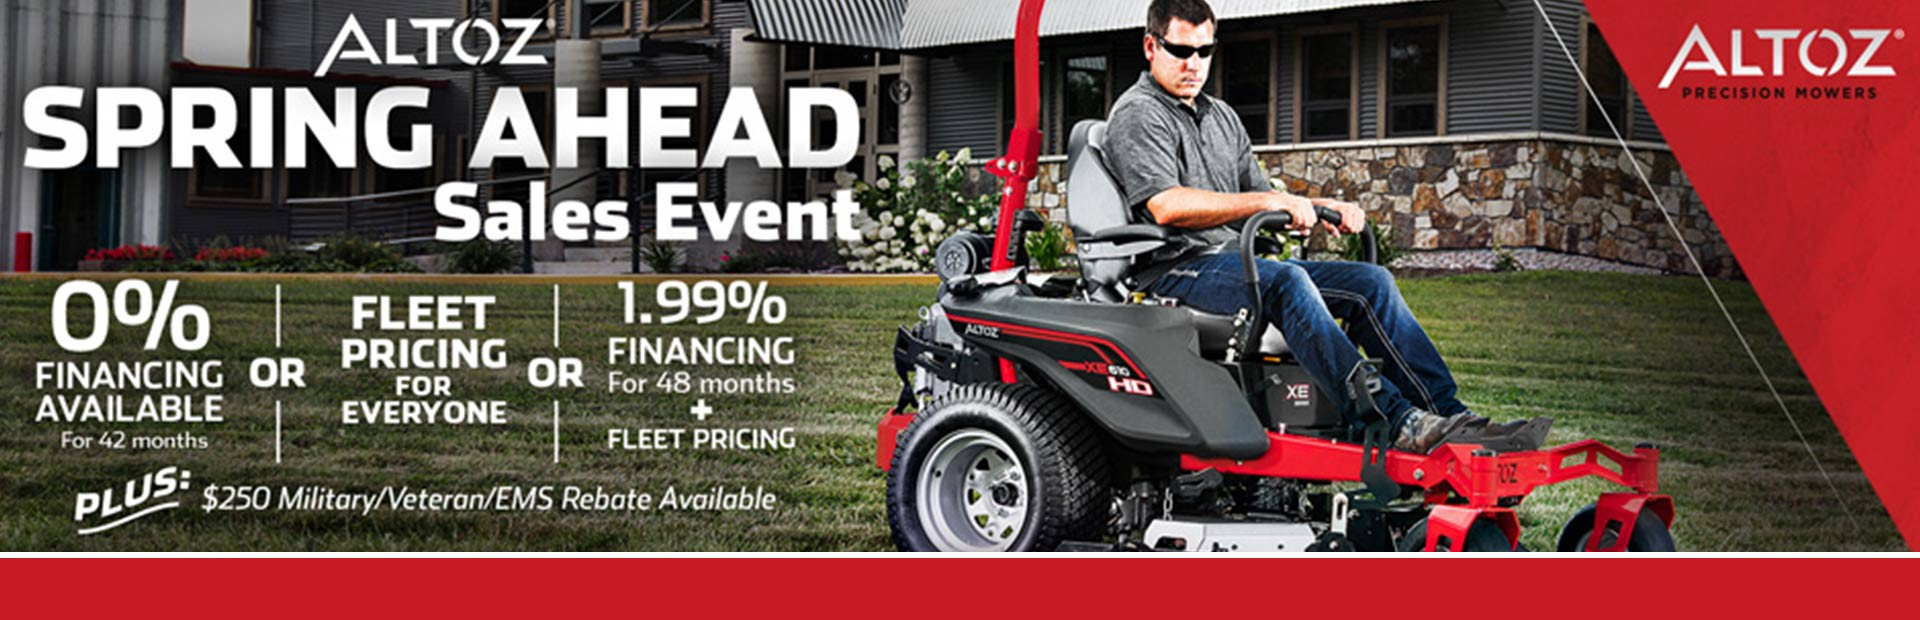 Spring Ahead Sales Event